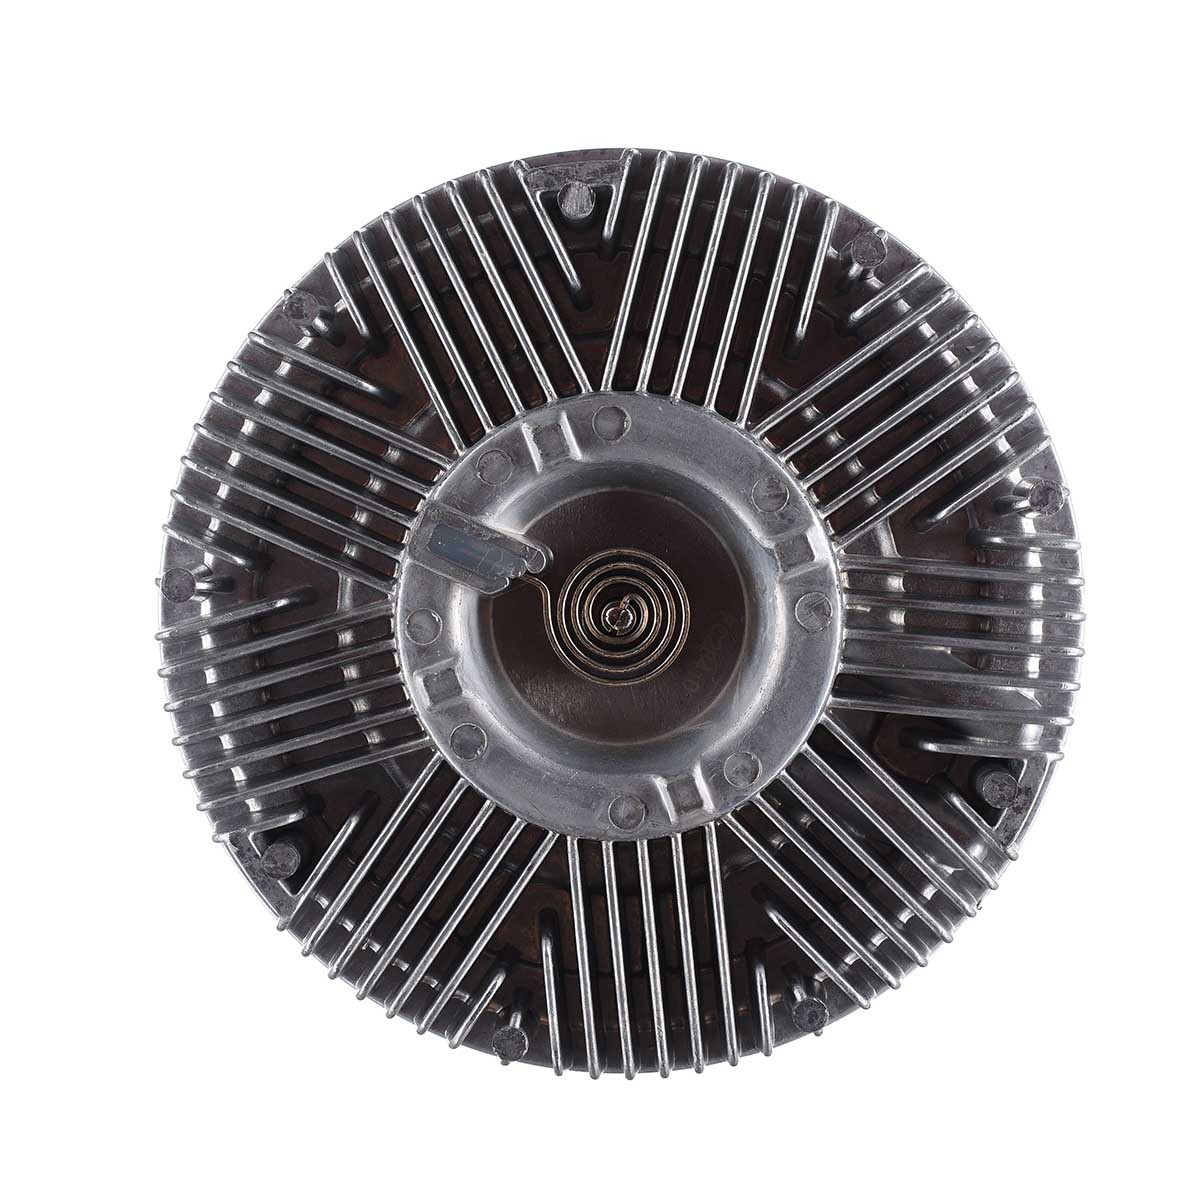 cooling fan clutch for ford explorer 1996 2001 mercury mountaineer 1997 1998 1999 2000 2001 v8 5 0l f67z8a616na 2841 ohv engine in fans kits from  [ 1200 x 1200 Pixel ]